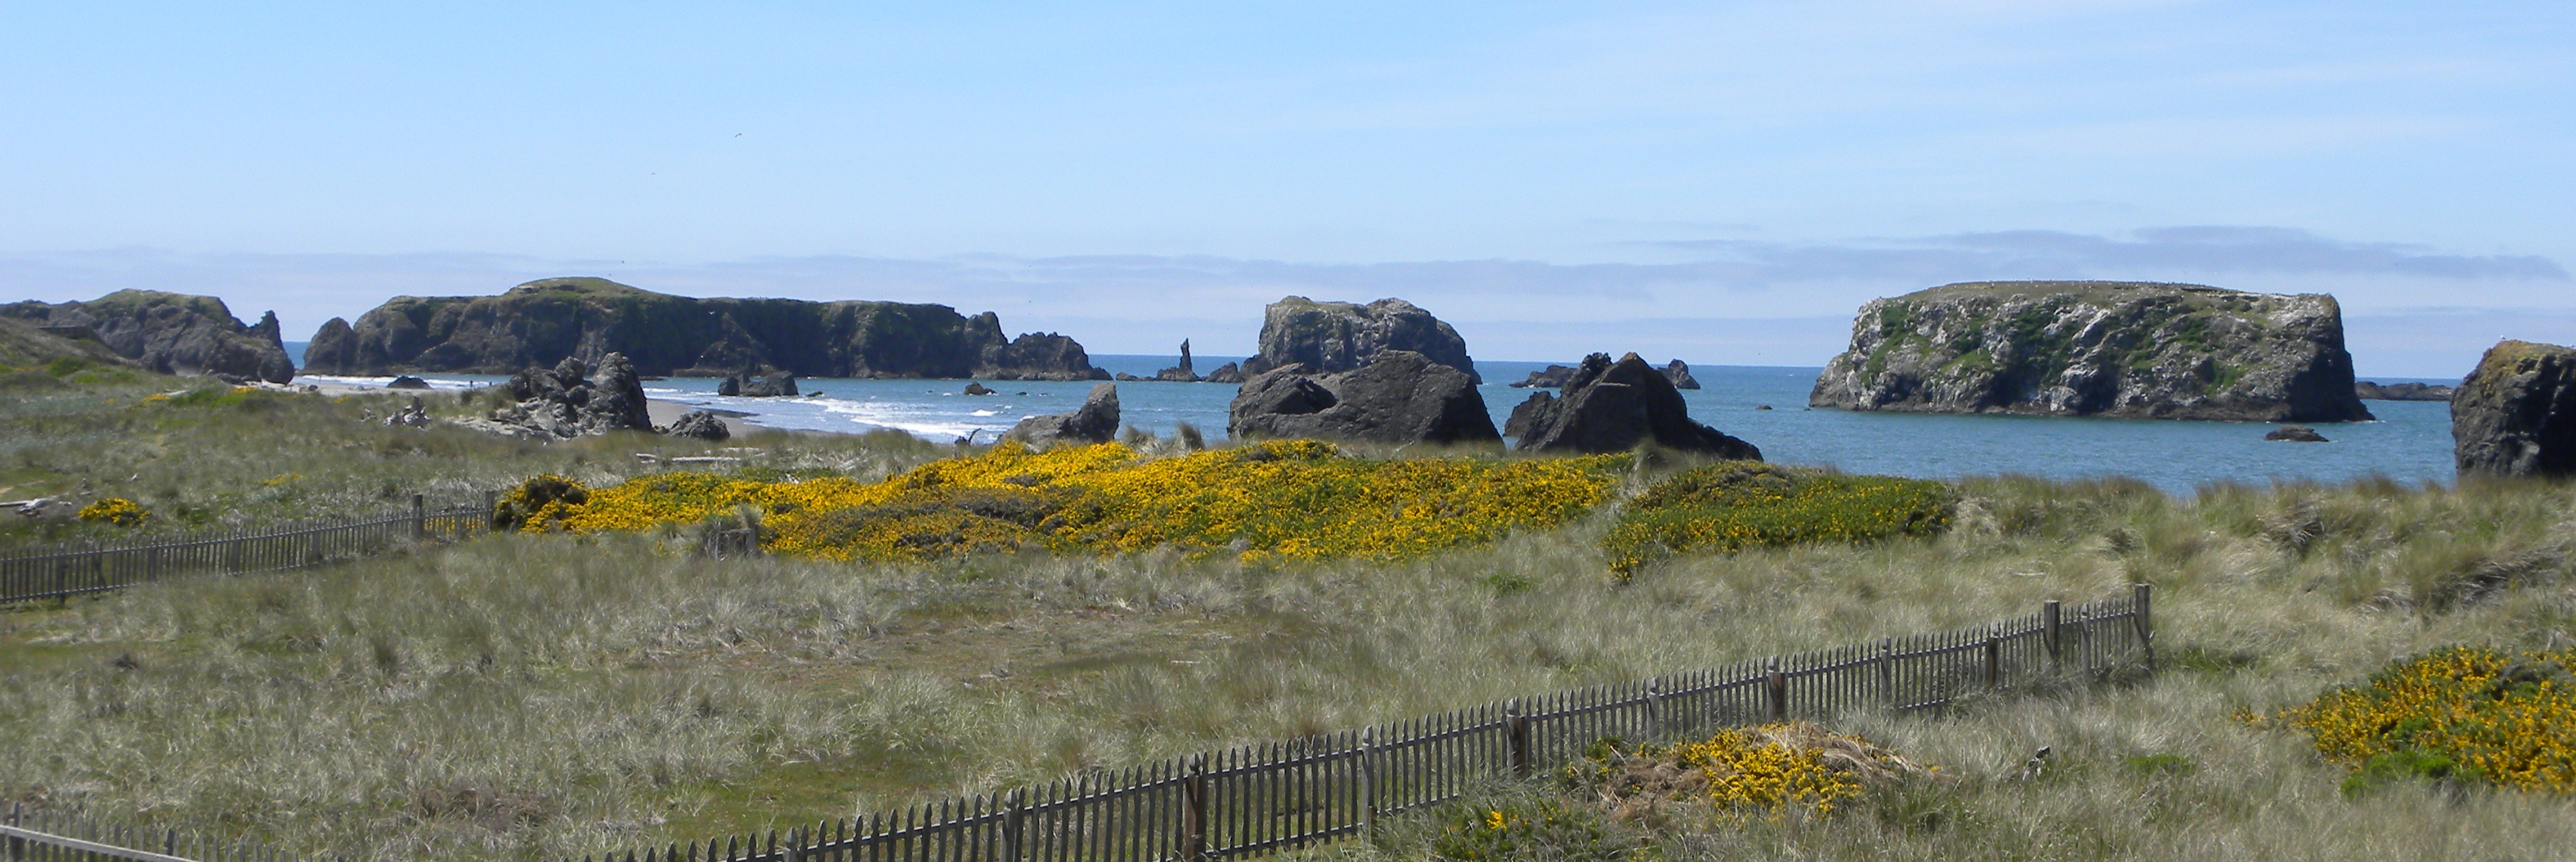 The Dunes House at Bandon, right by the ocean